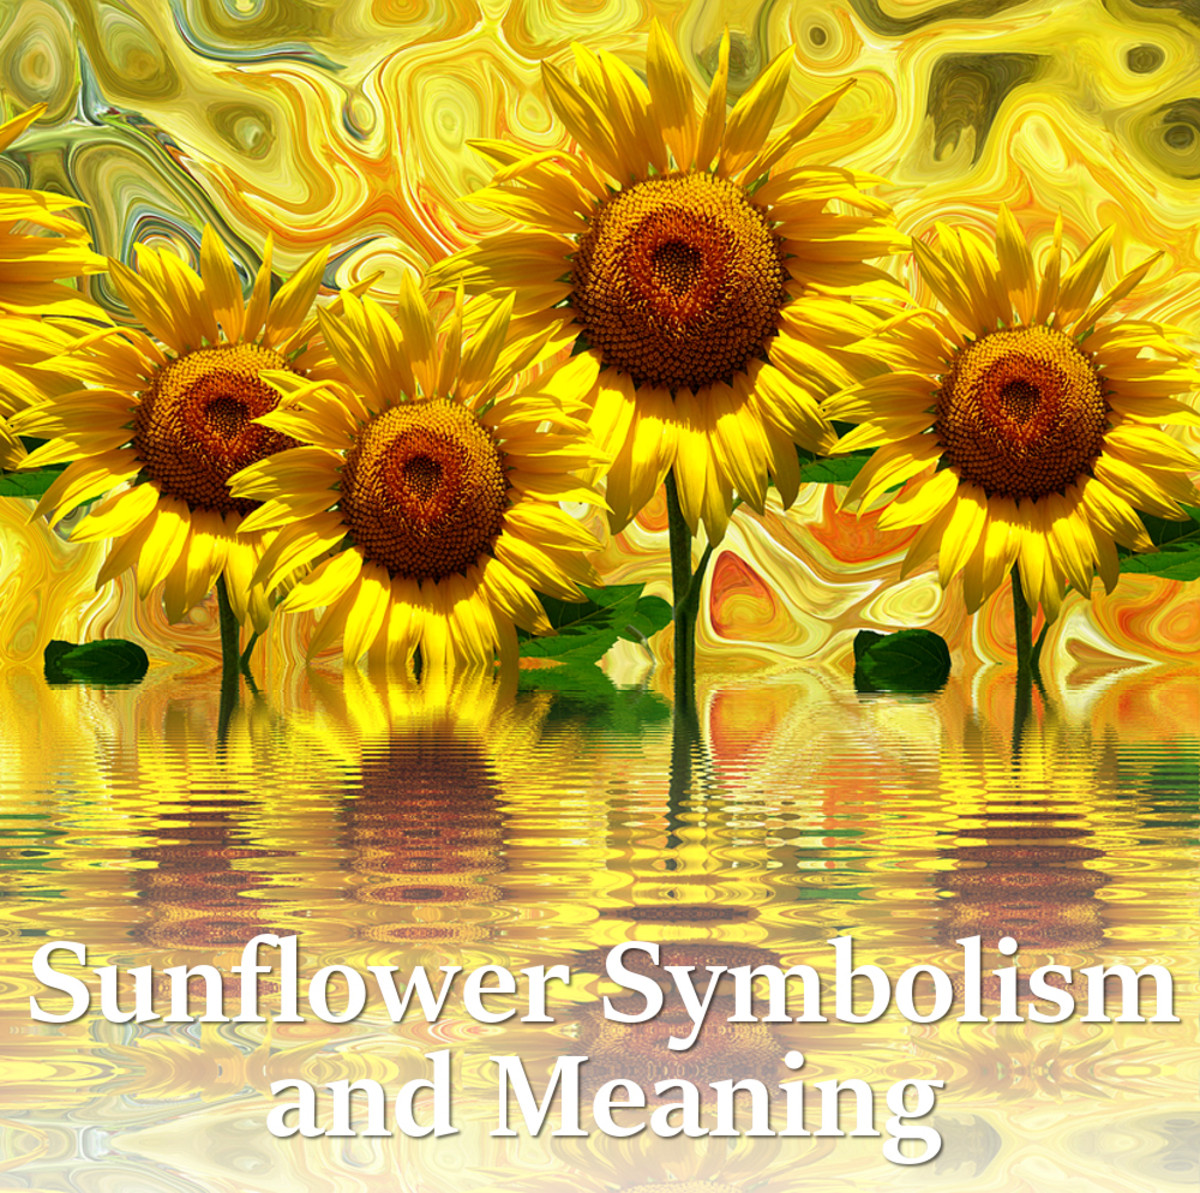 Sunflower symbolism and meaning, mythology, history, origins of the flower of the sun